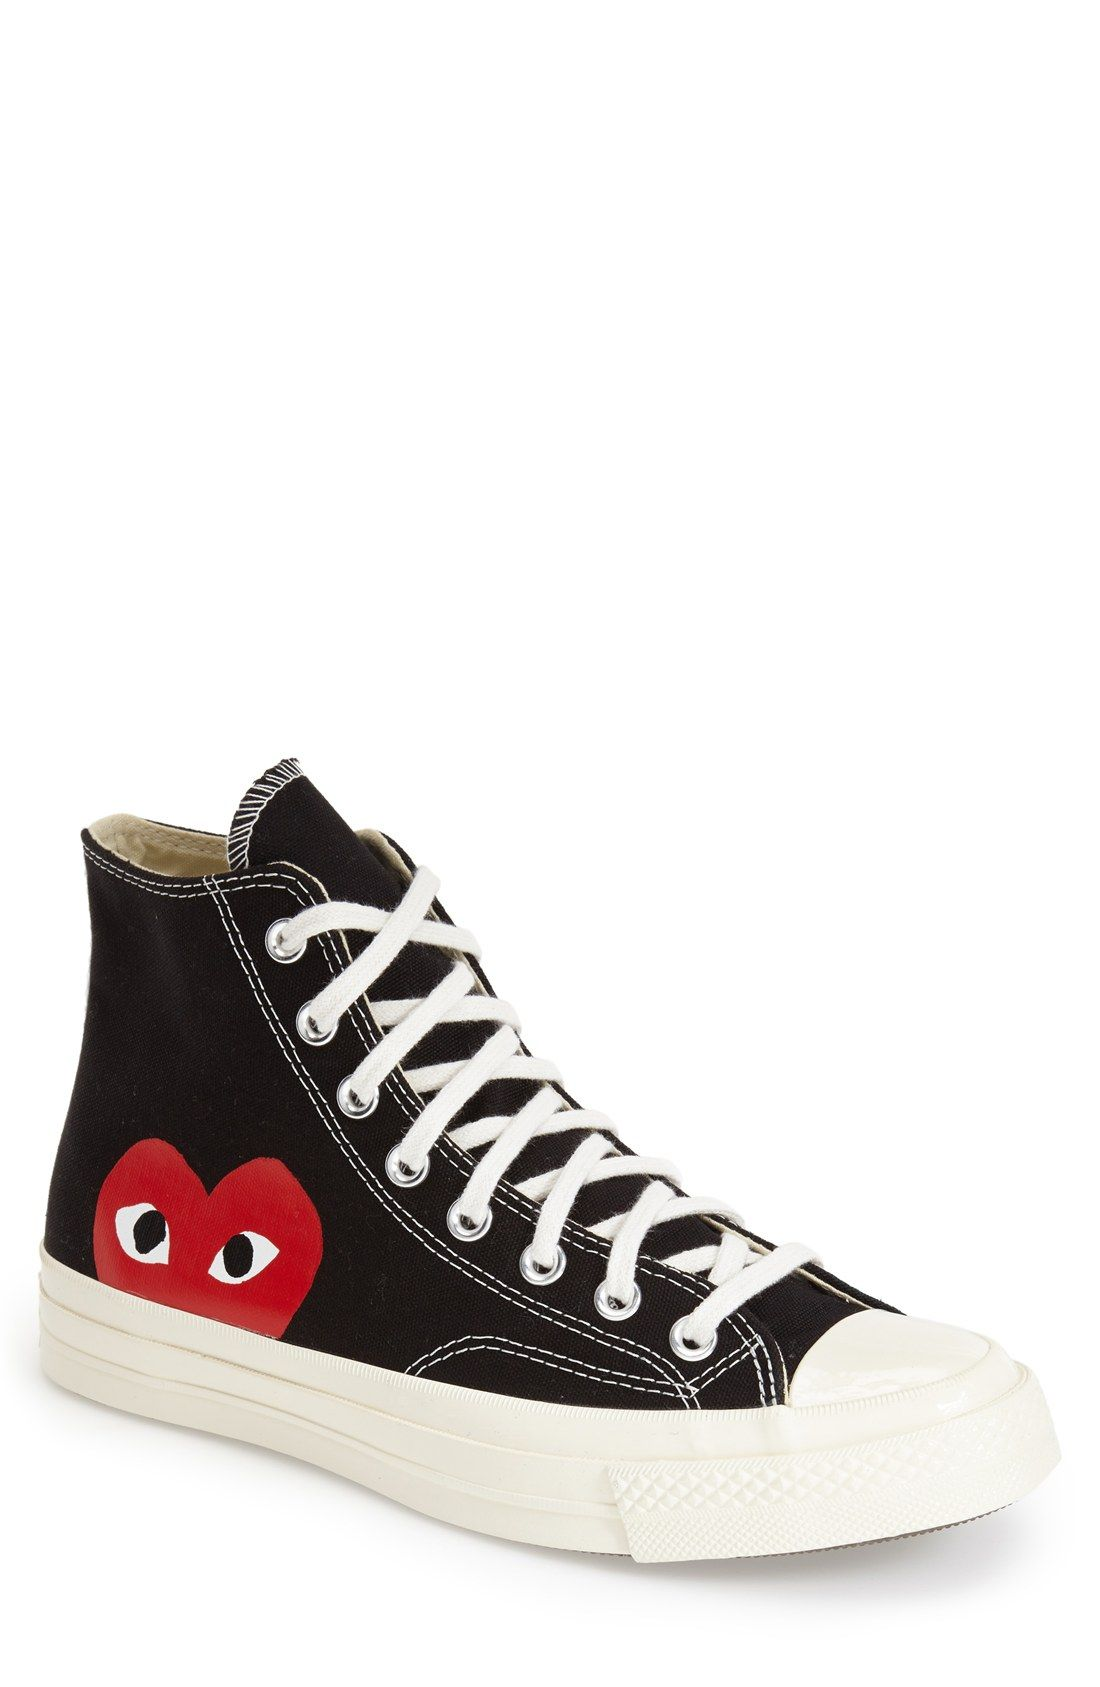 7bbe050108b8 Comme des Garçons x Converse Chuck Taylor®  PLAY - Hidden Heart  High Top  Sneaker (Men)